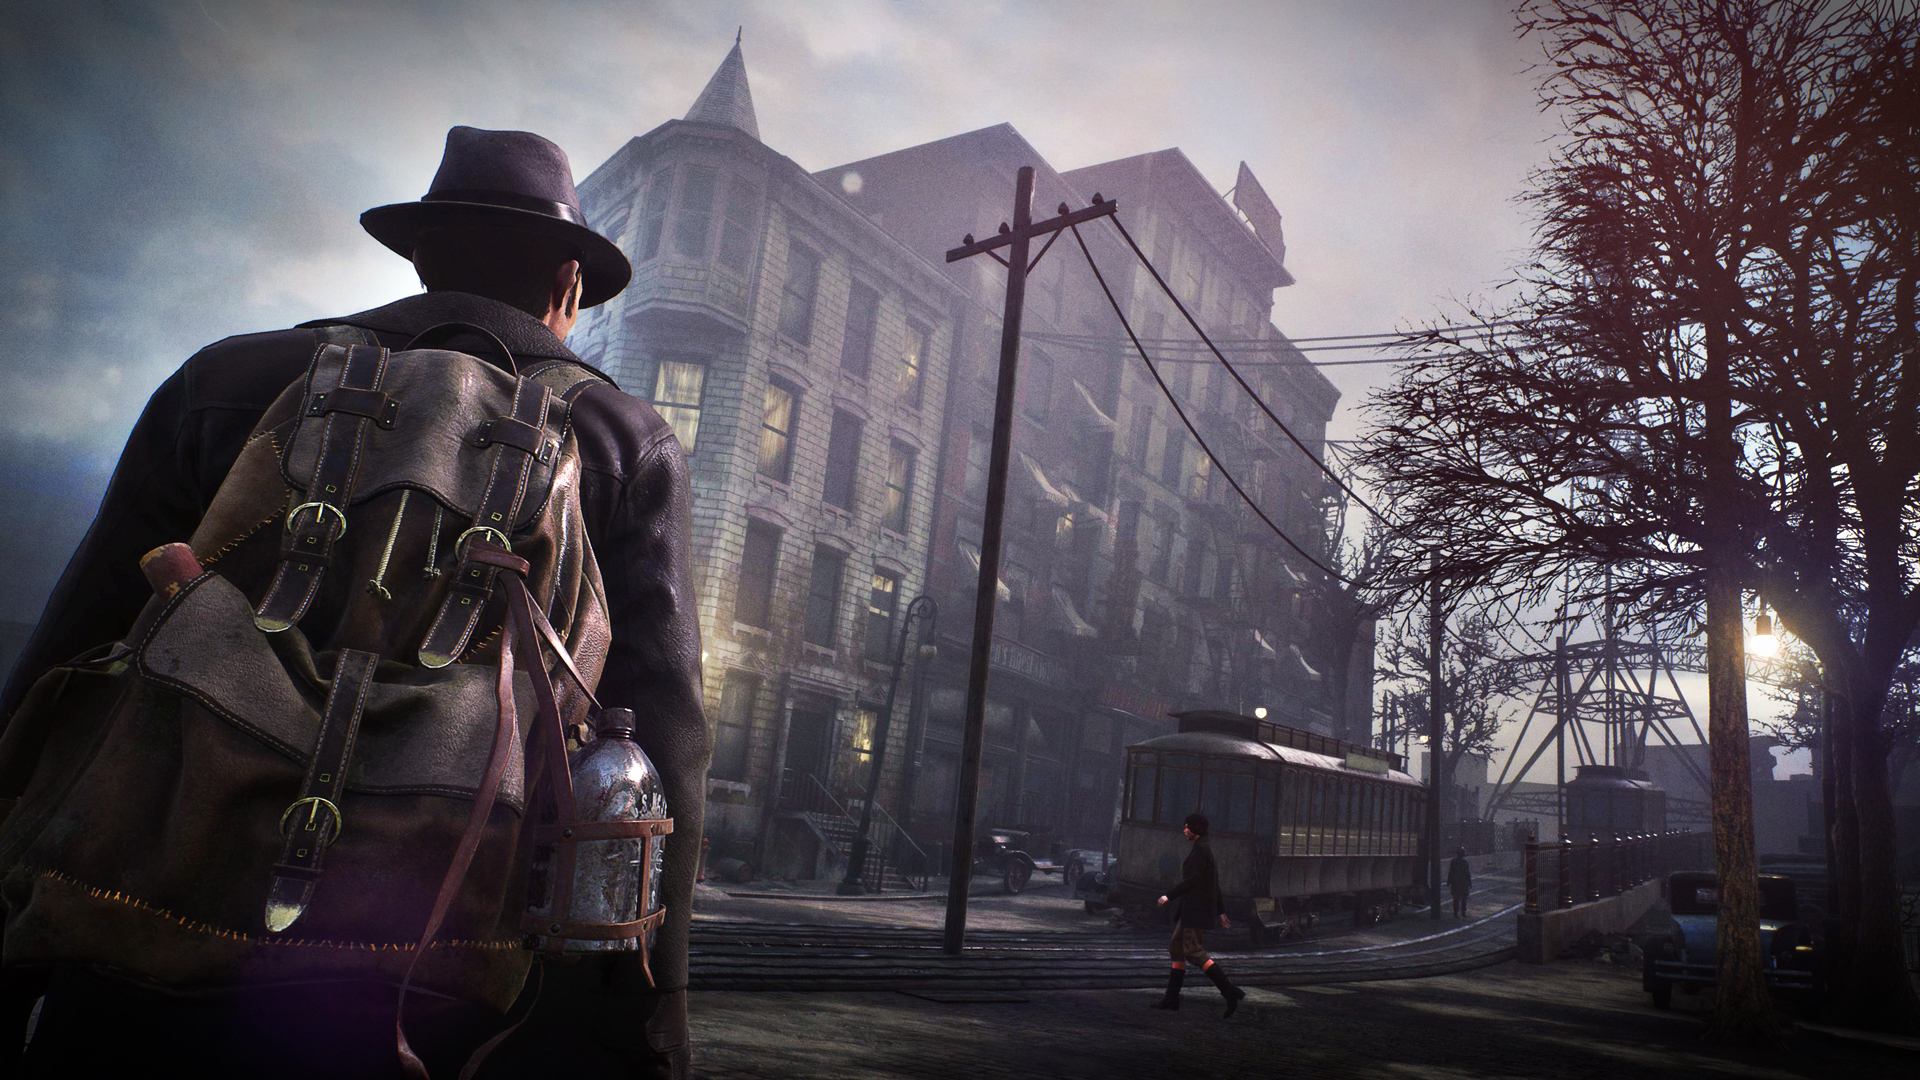 The Sinking City is the Lovecraft meets Sherlock fan fiction I didn't know I needed